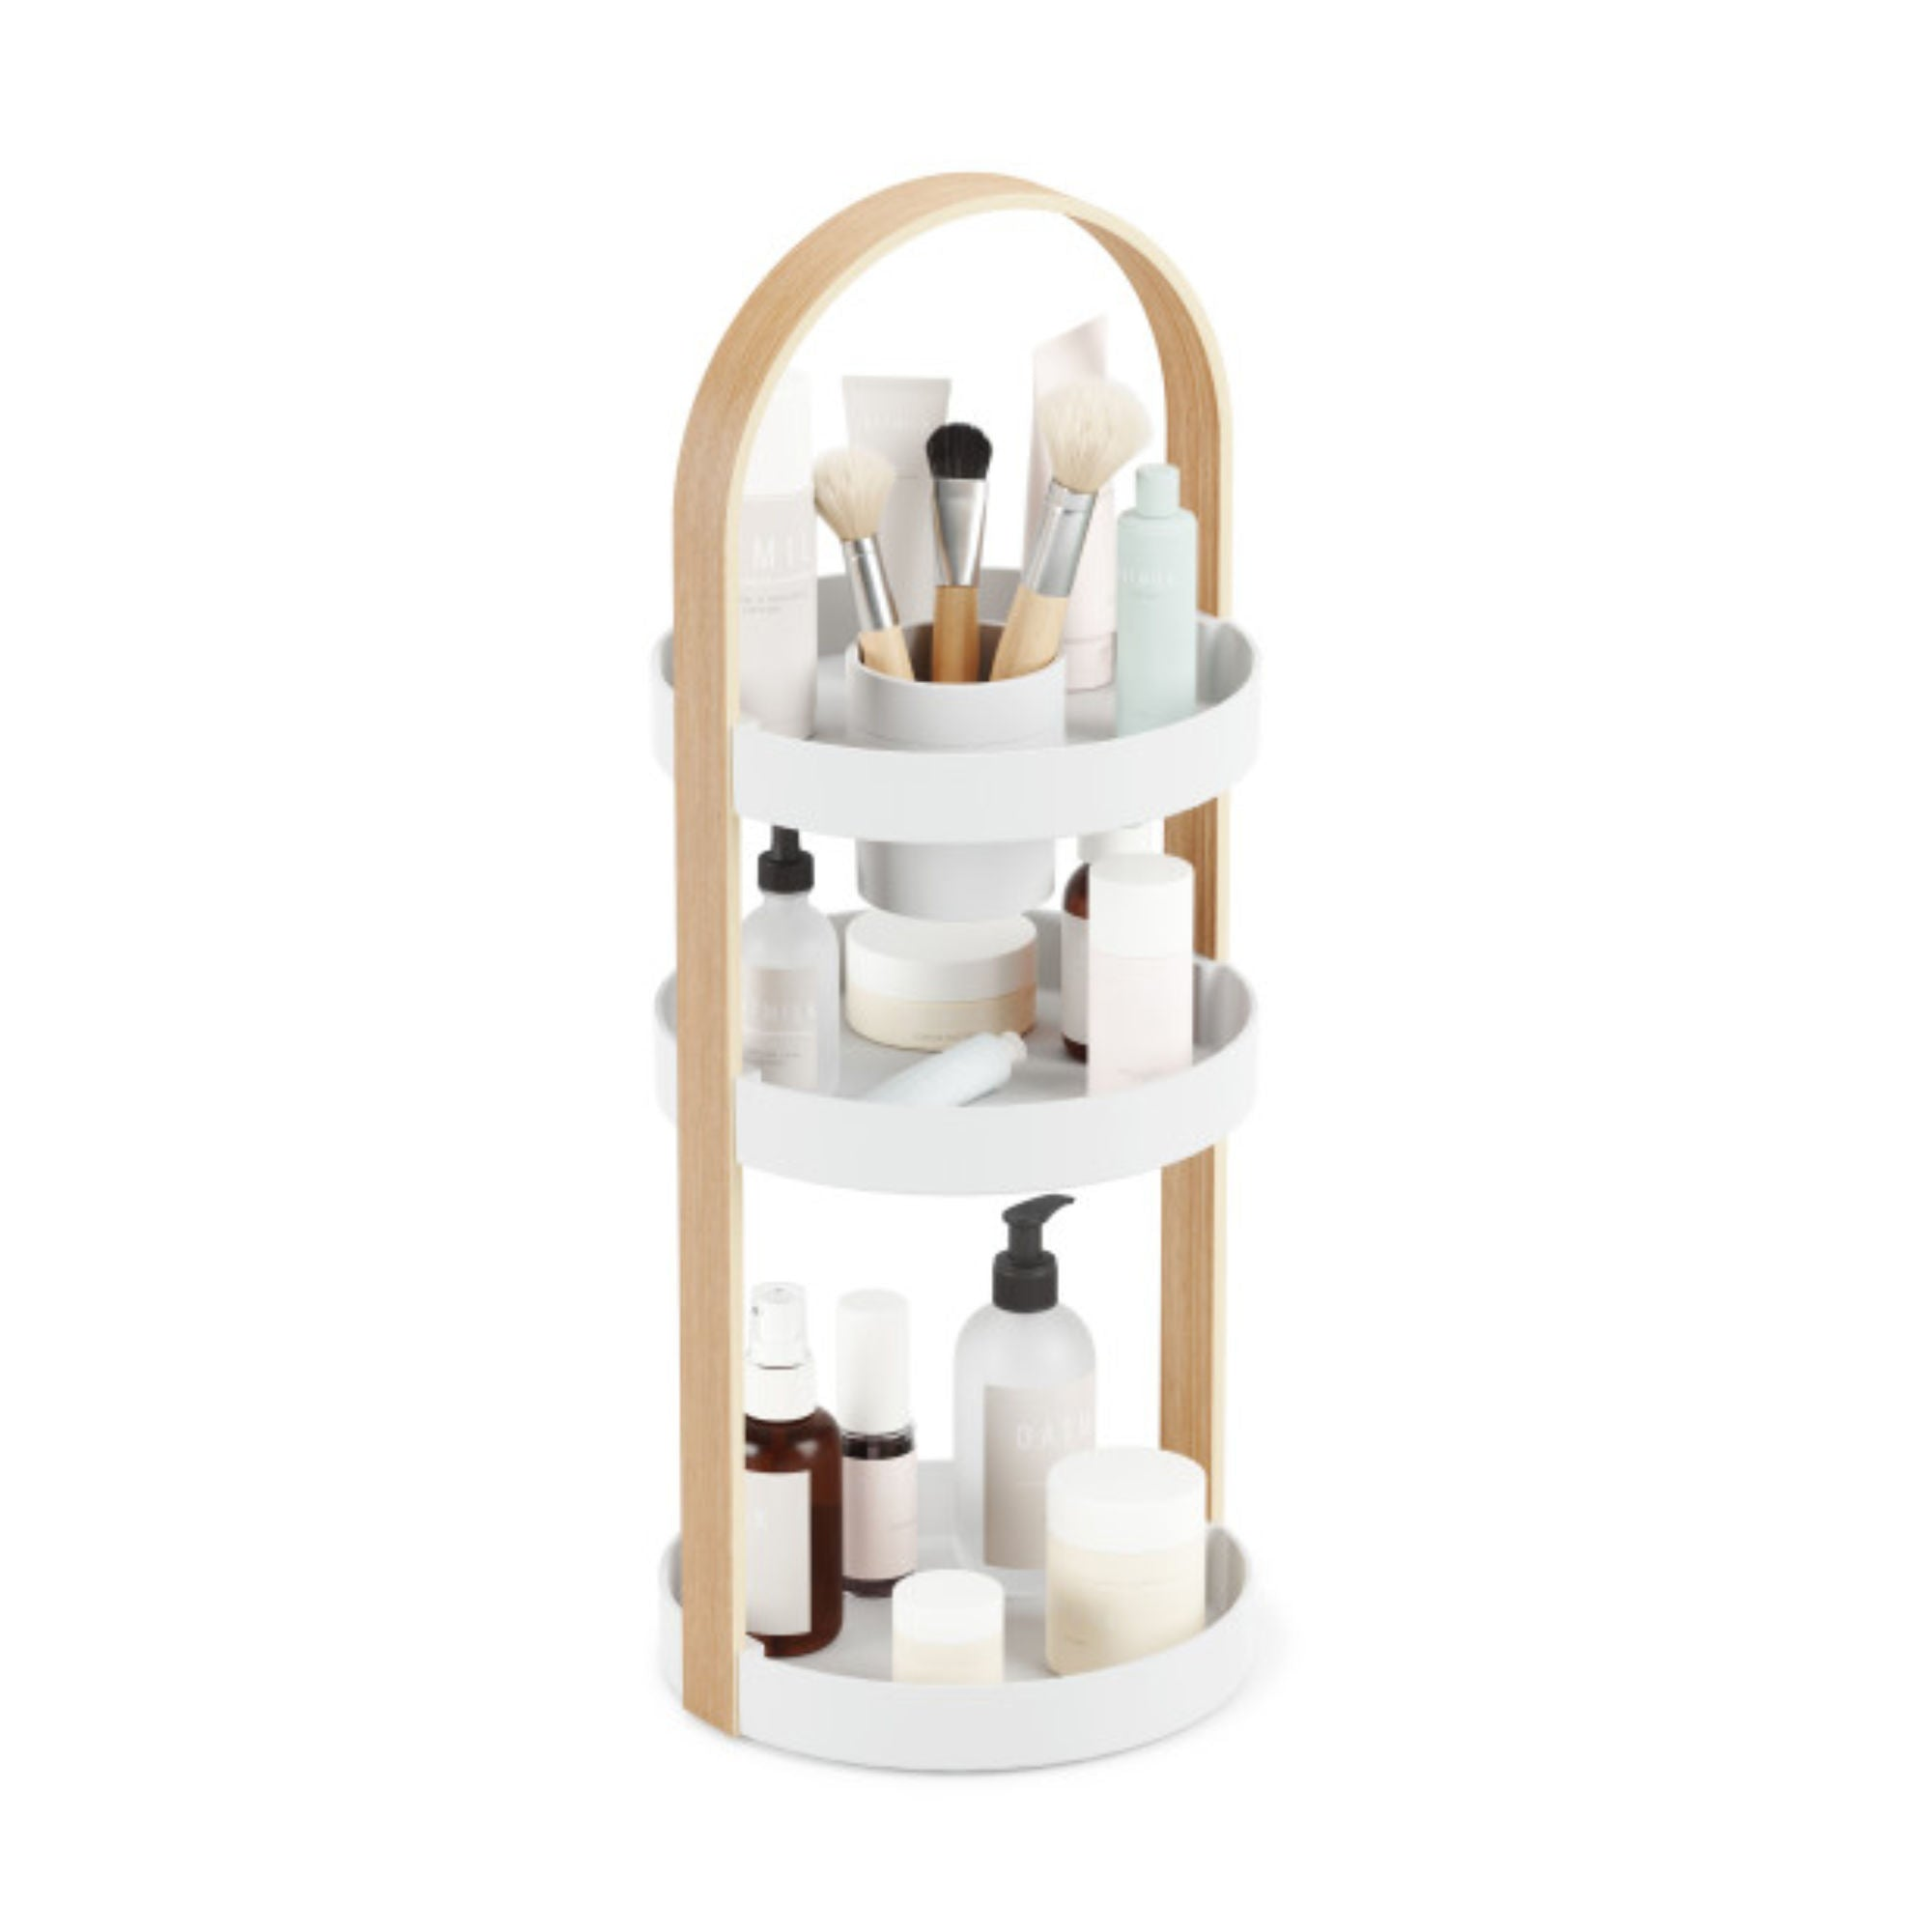 Umbra Bellwood Cosmetic Organizer , White/Natural